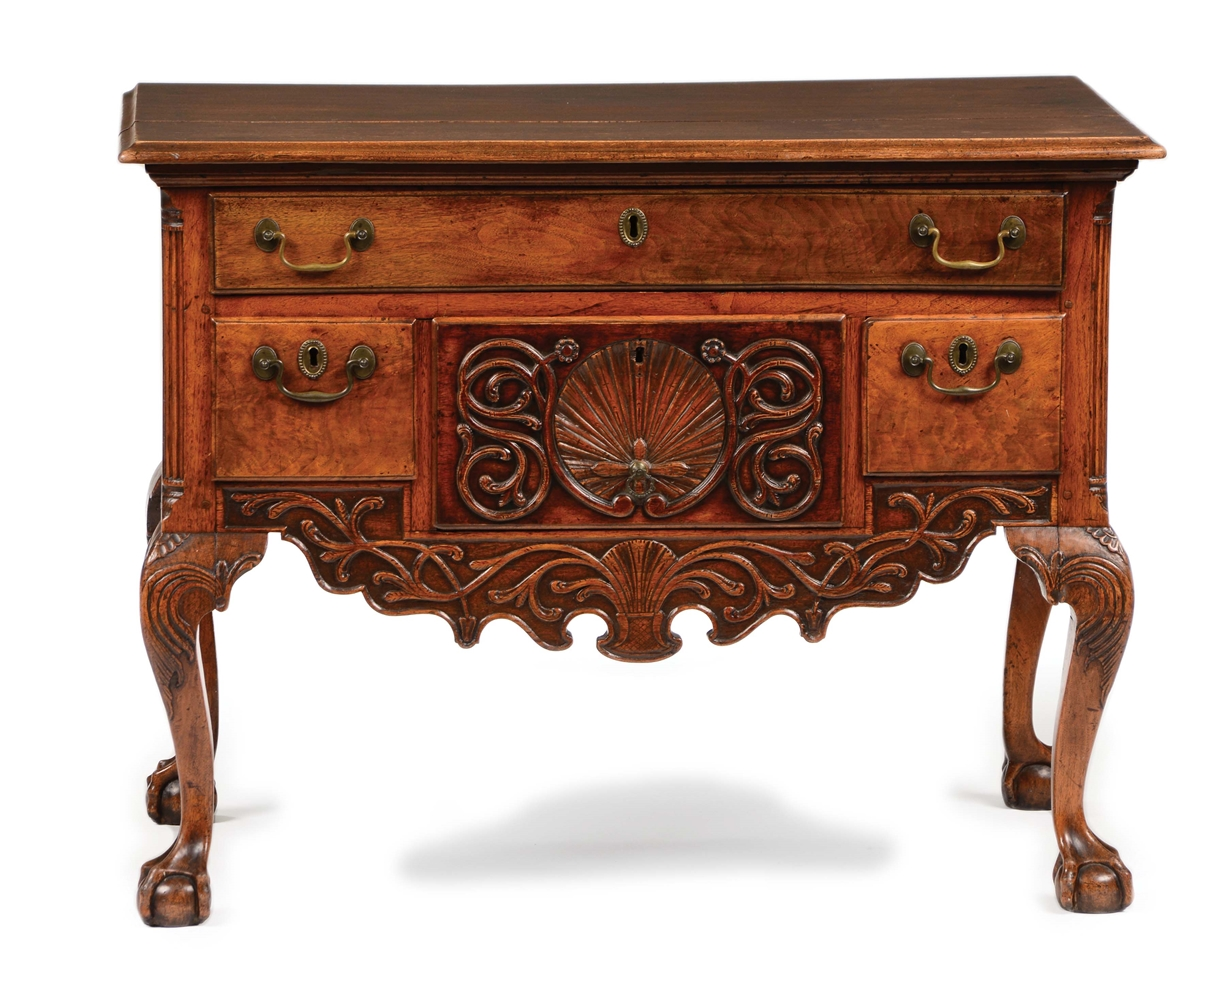 CHIPPENDALE CARVED WALNUT DRESSING TABLE. LANCASTER, PENNSYLVANIA. CIRCA 1780.